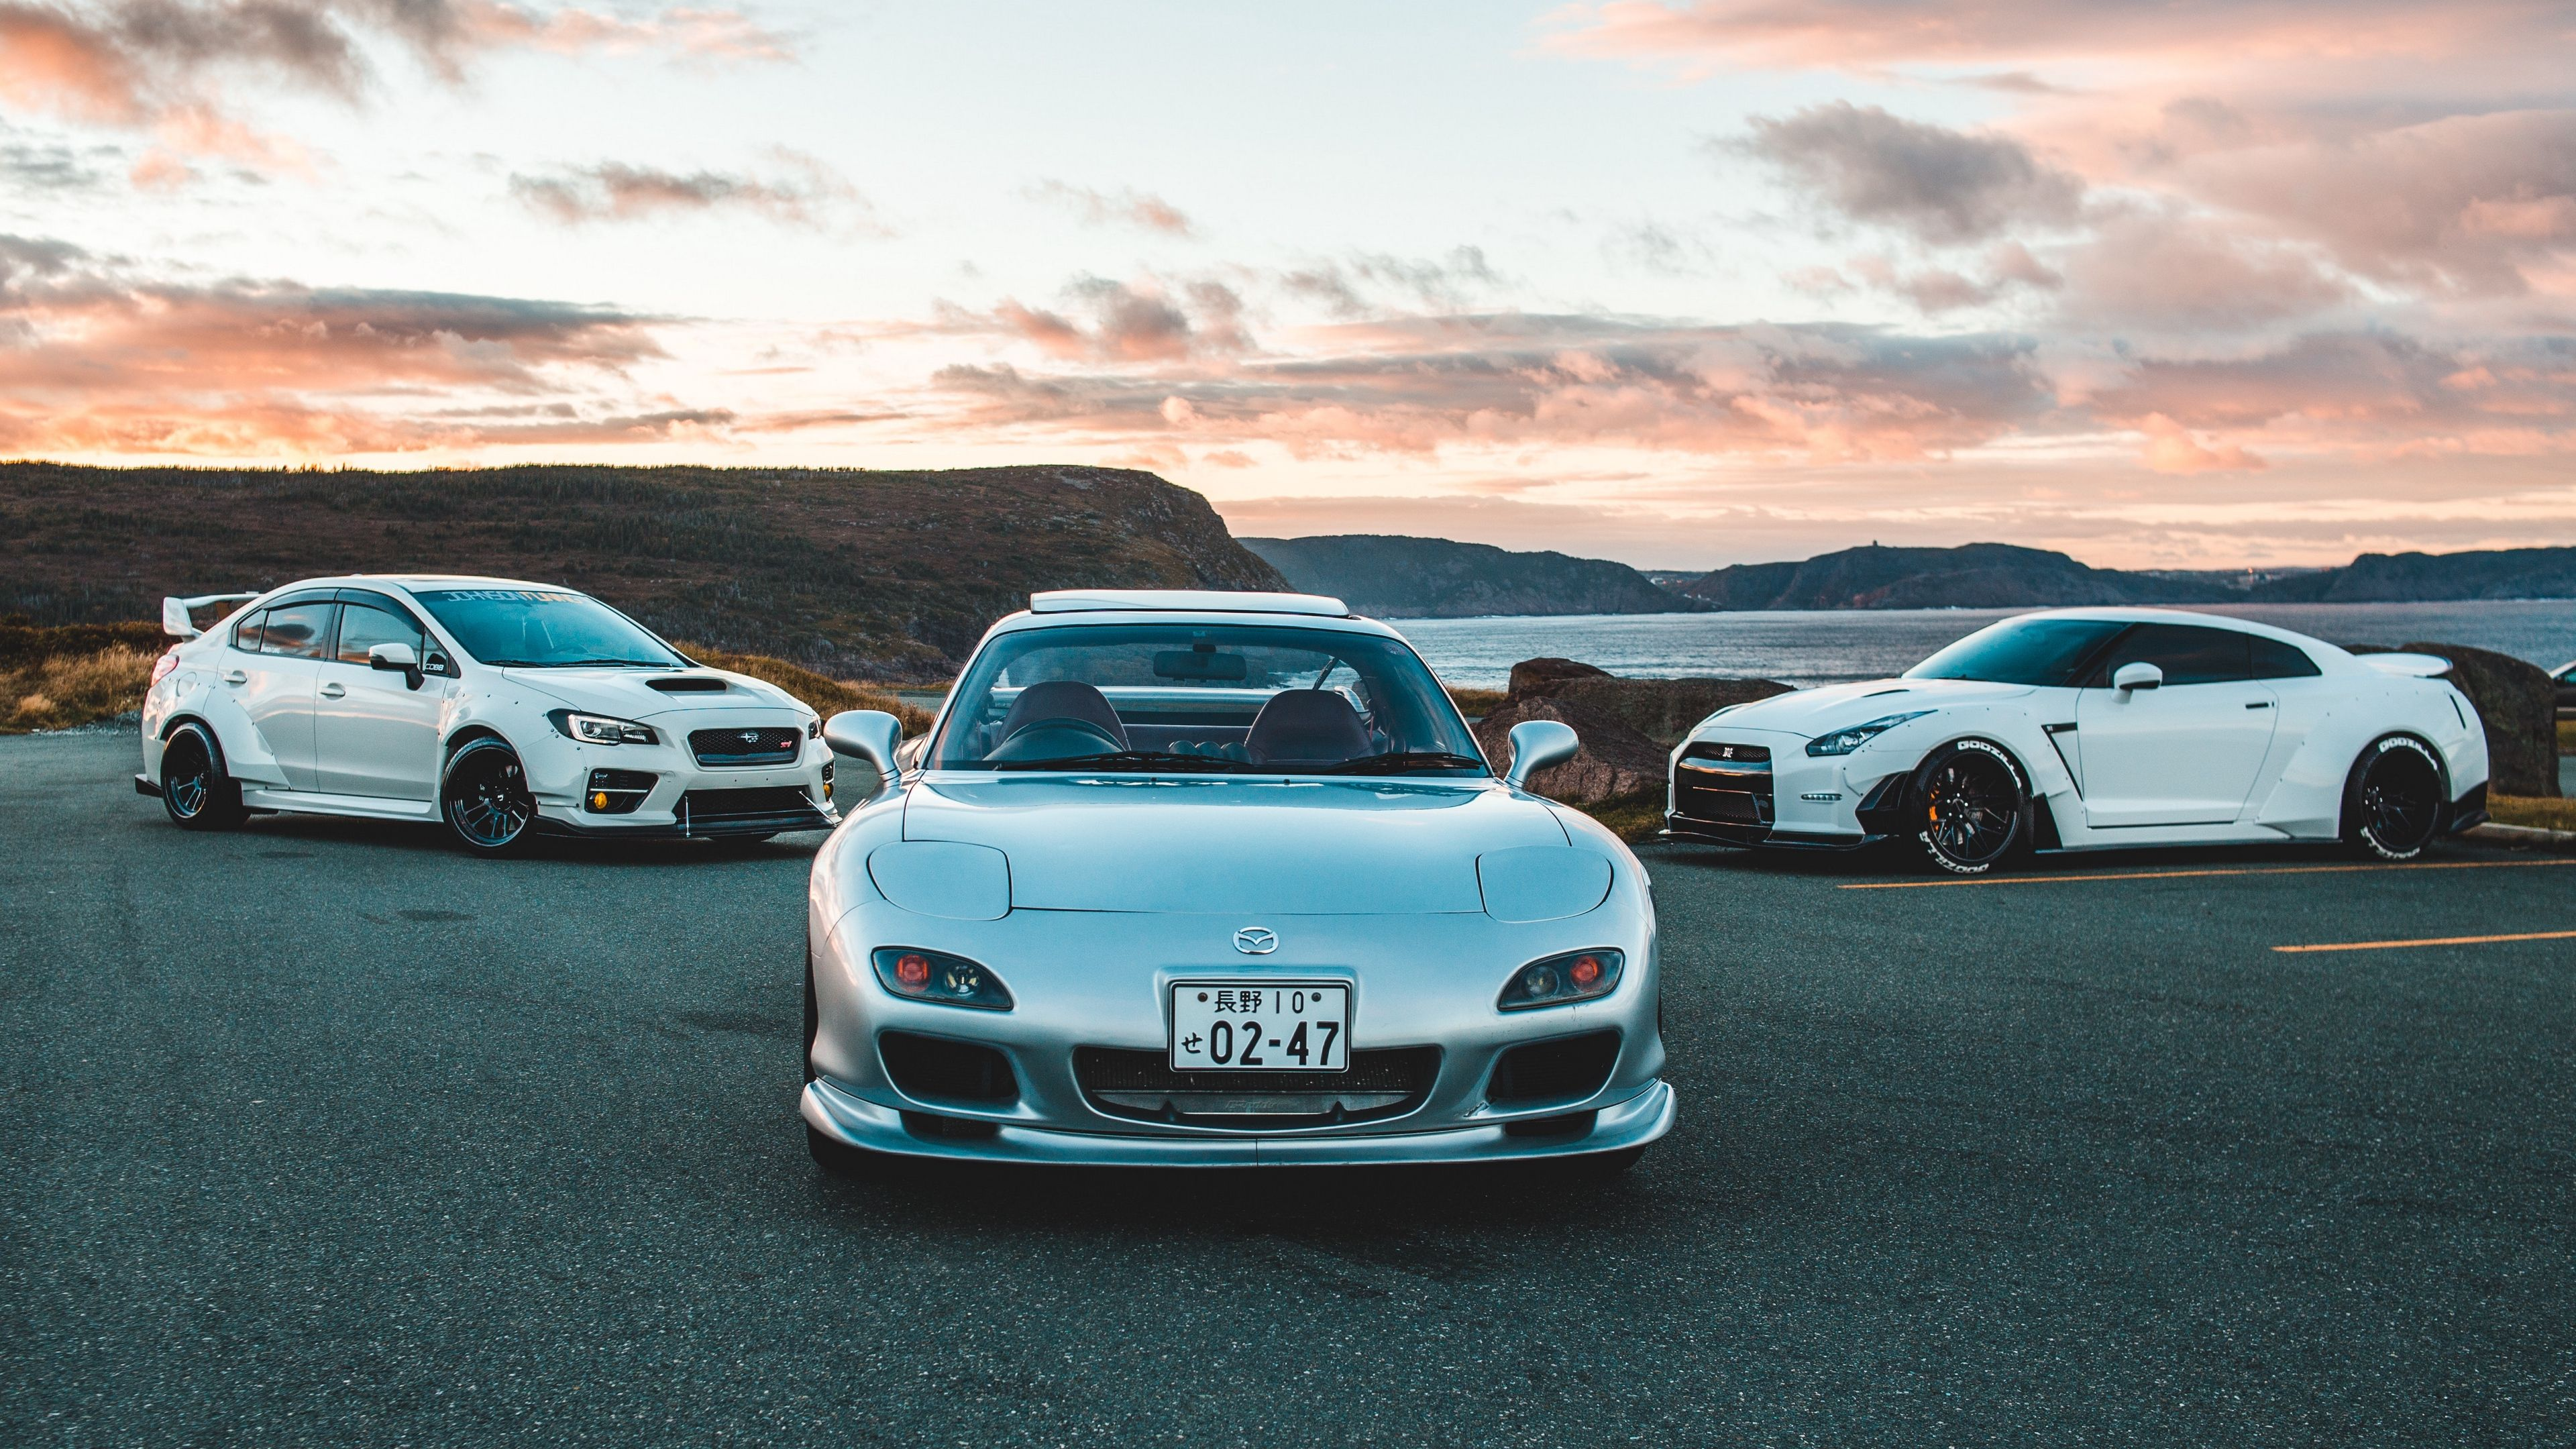 3840x2160 Wallpaper Mazda Rx 7 Mazda Cars Front View Backround